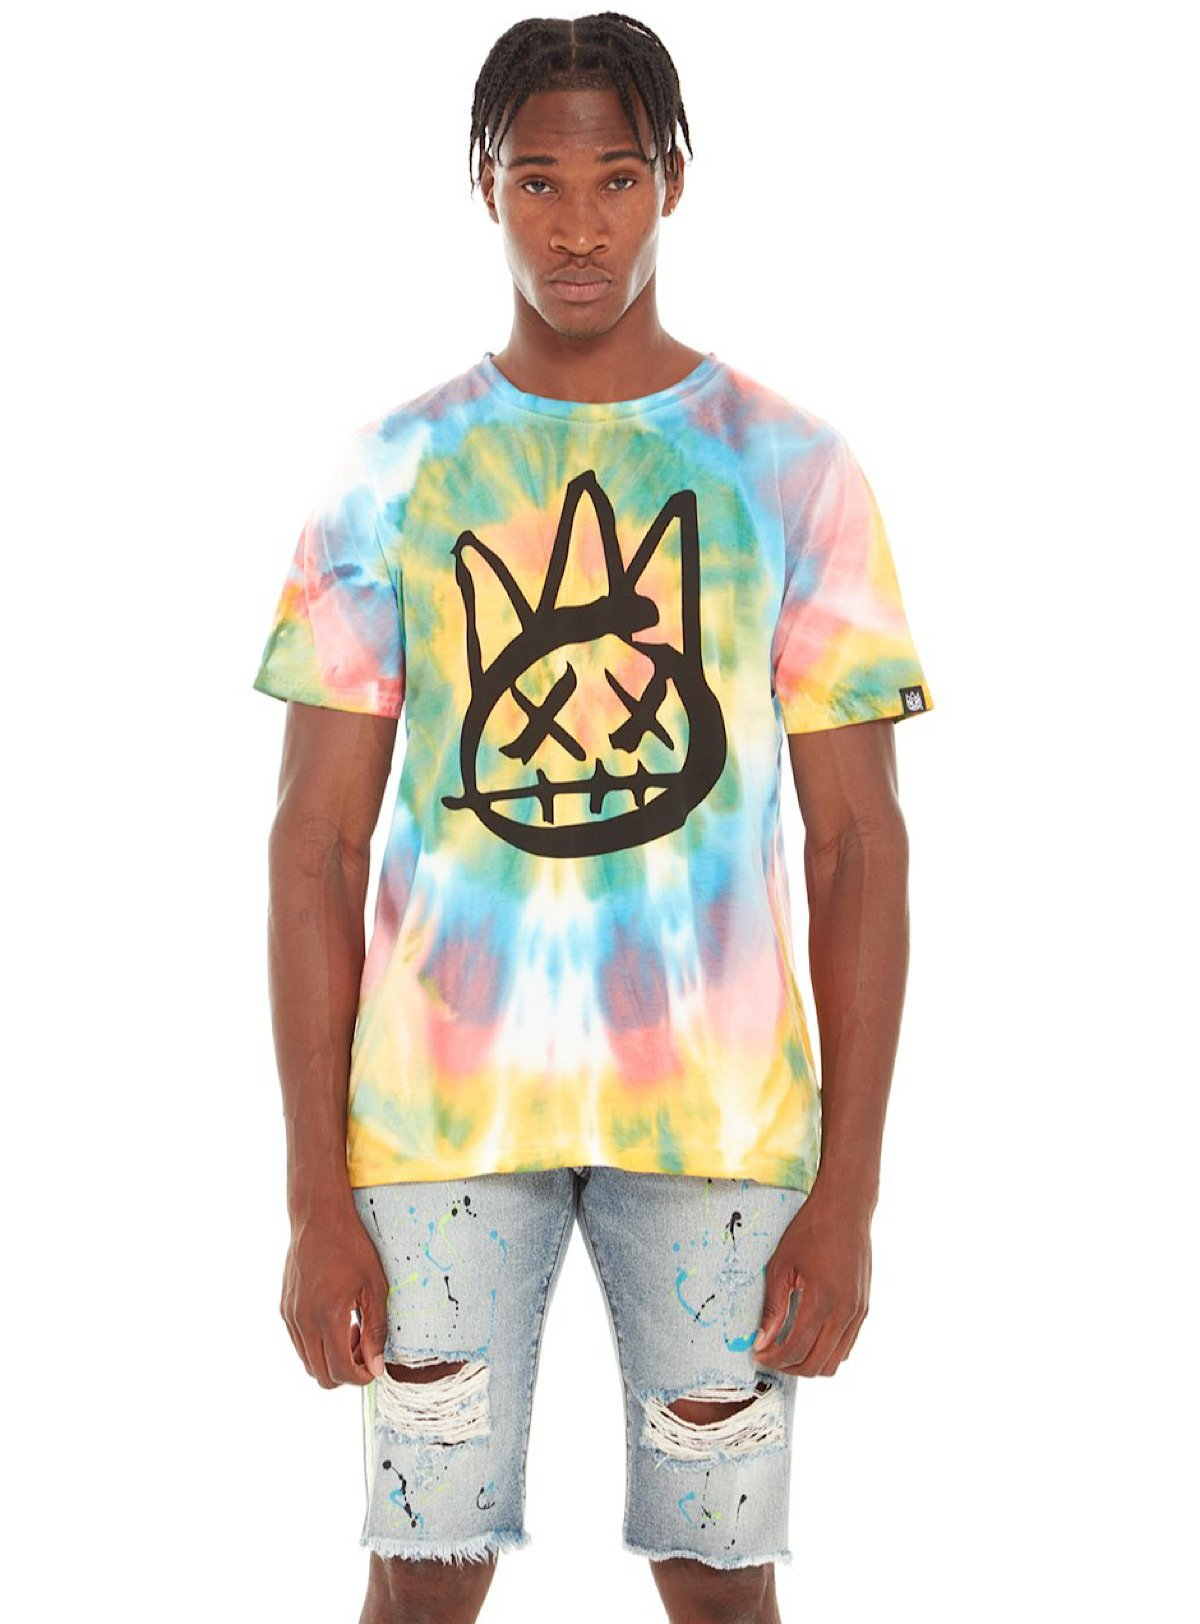 Cult Of Individuality T-Shirt - Shimuchan - Tie Dye Multi - 620A5-VK95A